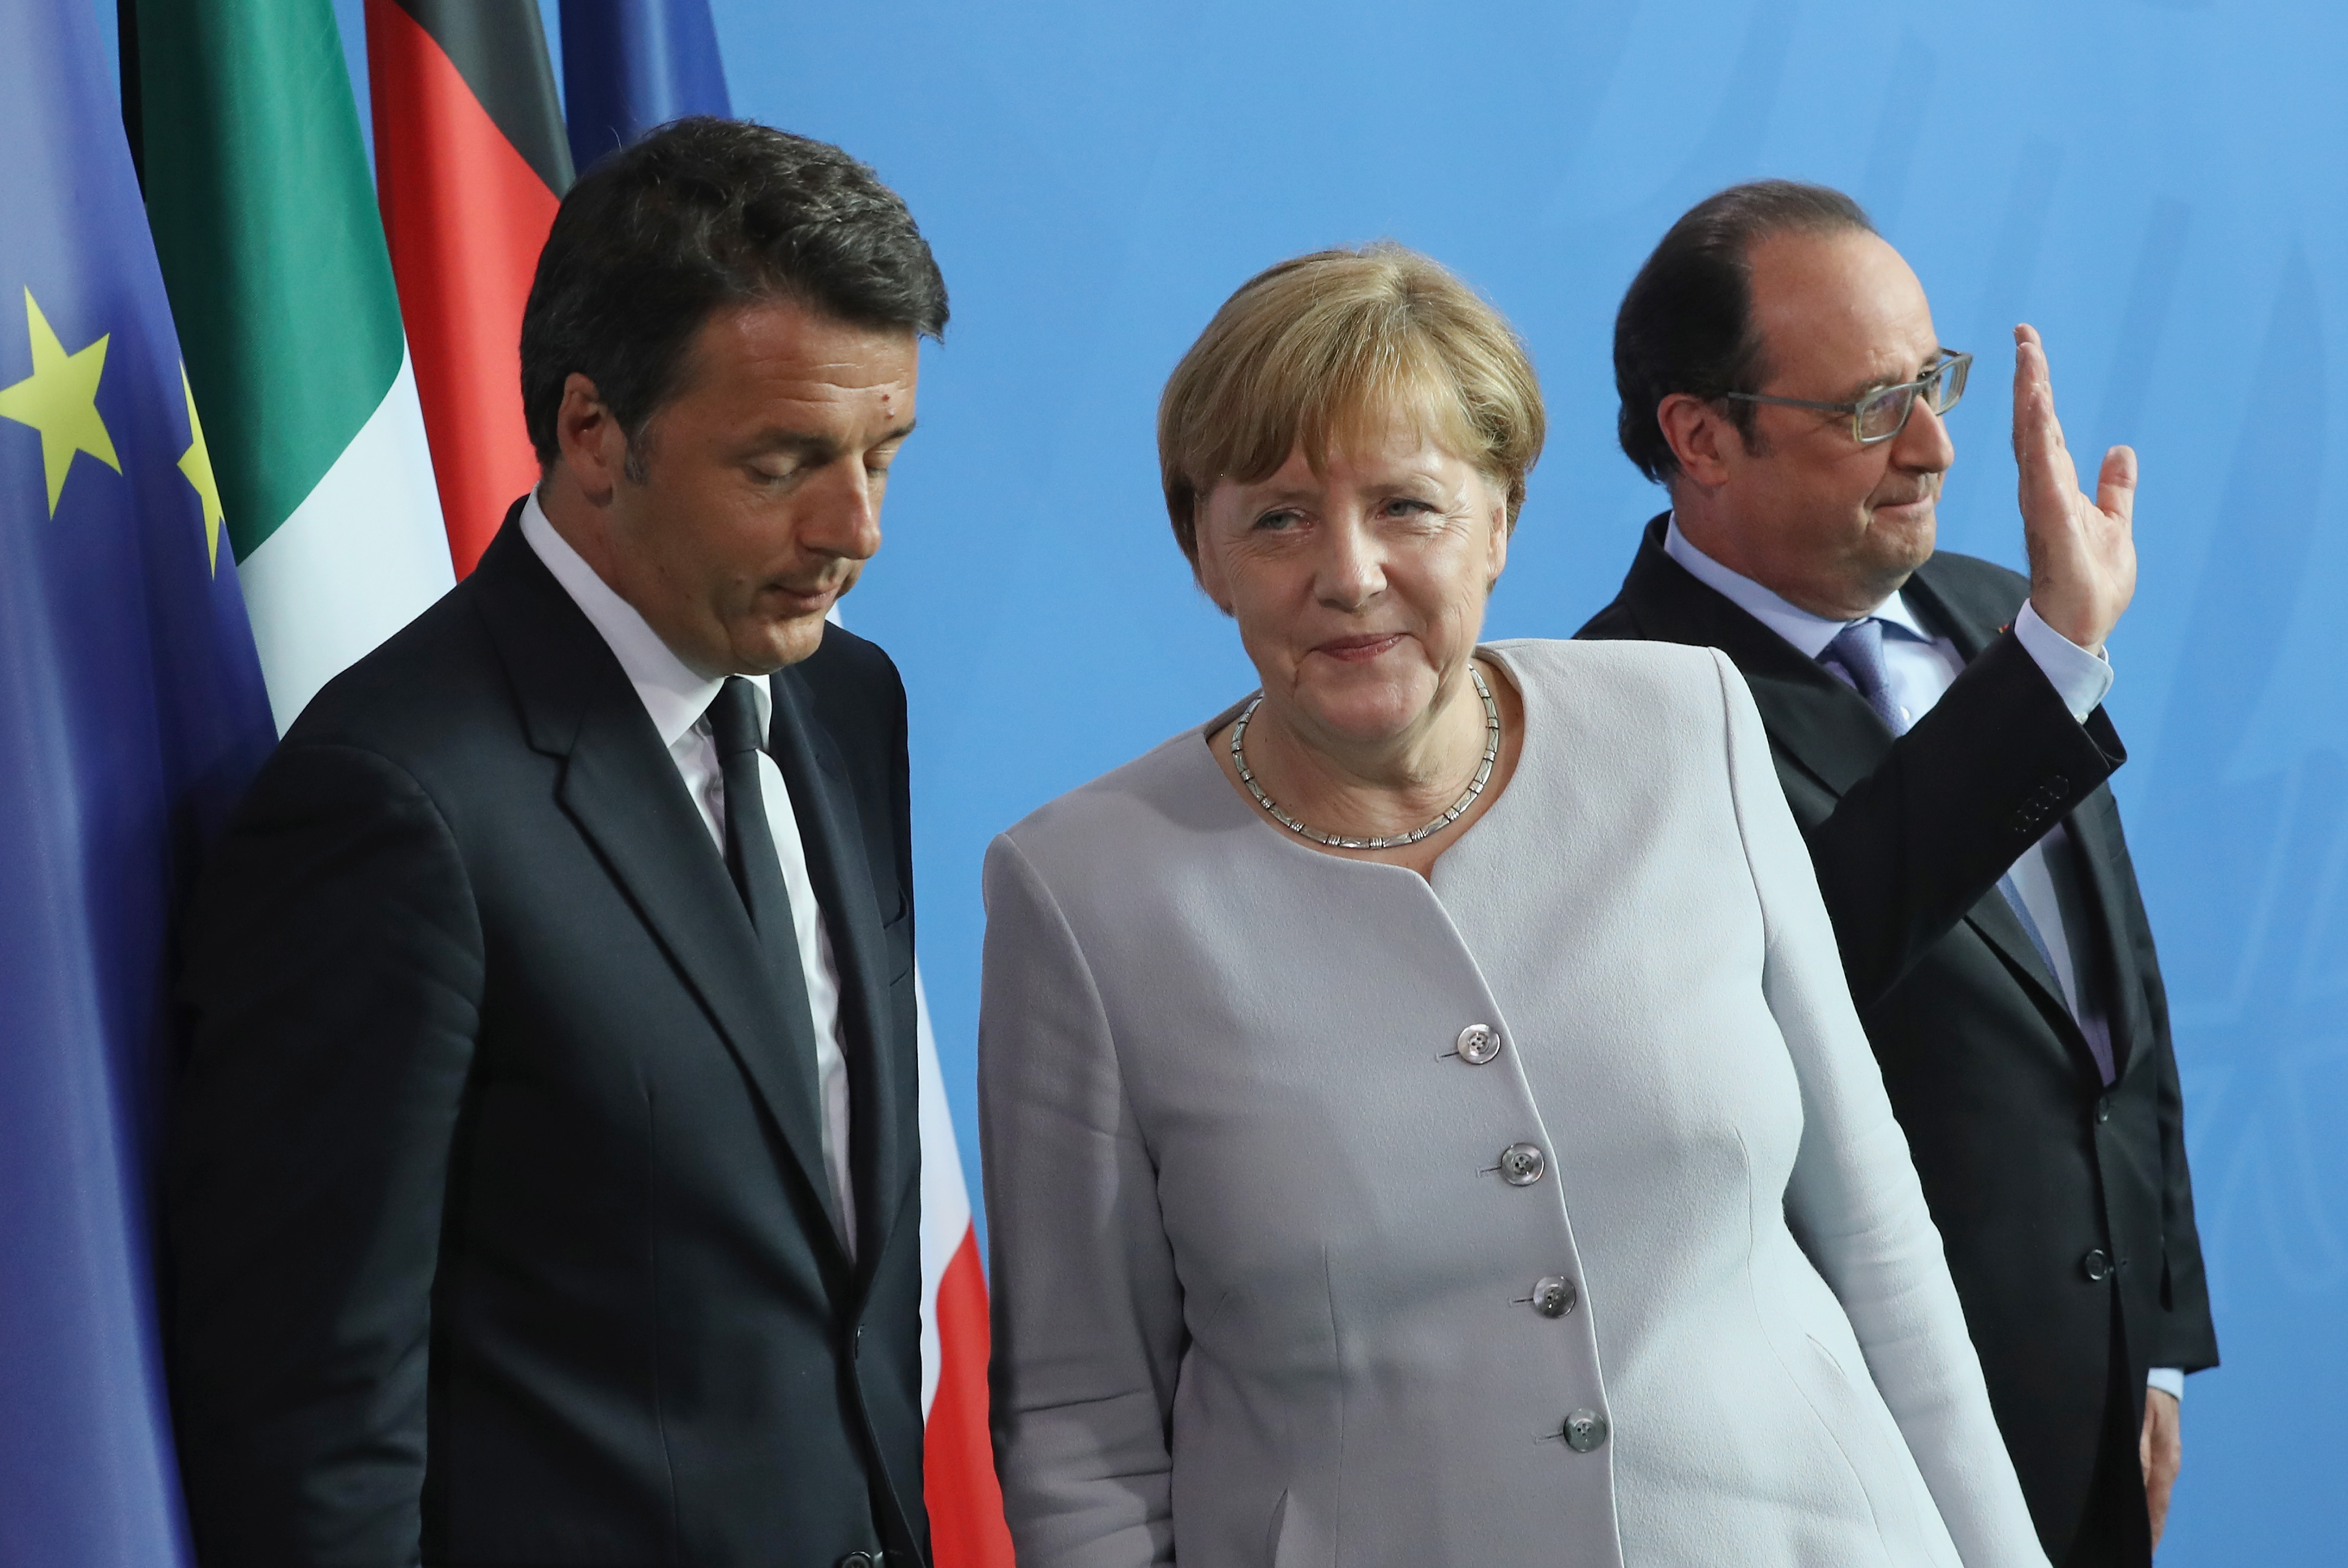 German Chancellor Angela Merkel, French President Francois Hollande (R) and Italian Prime Minister Matteo Renzi depart after speaking to the media during talks at the Chancellery on June 27, 2016 in Berlin.